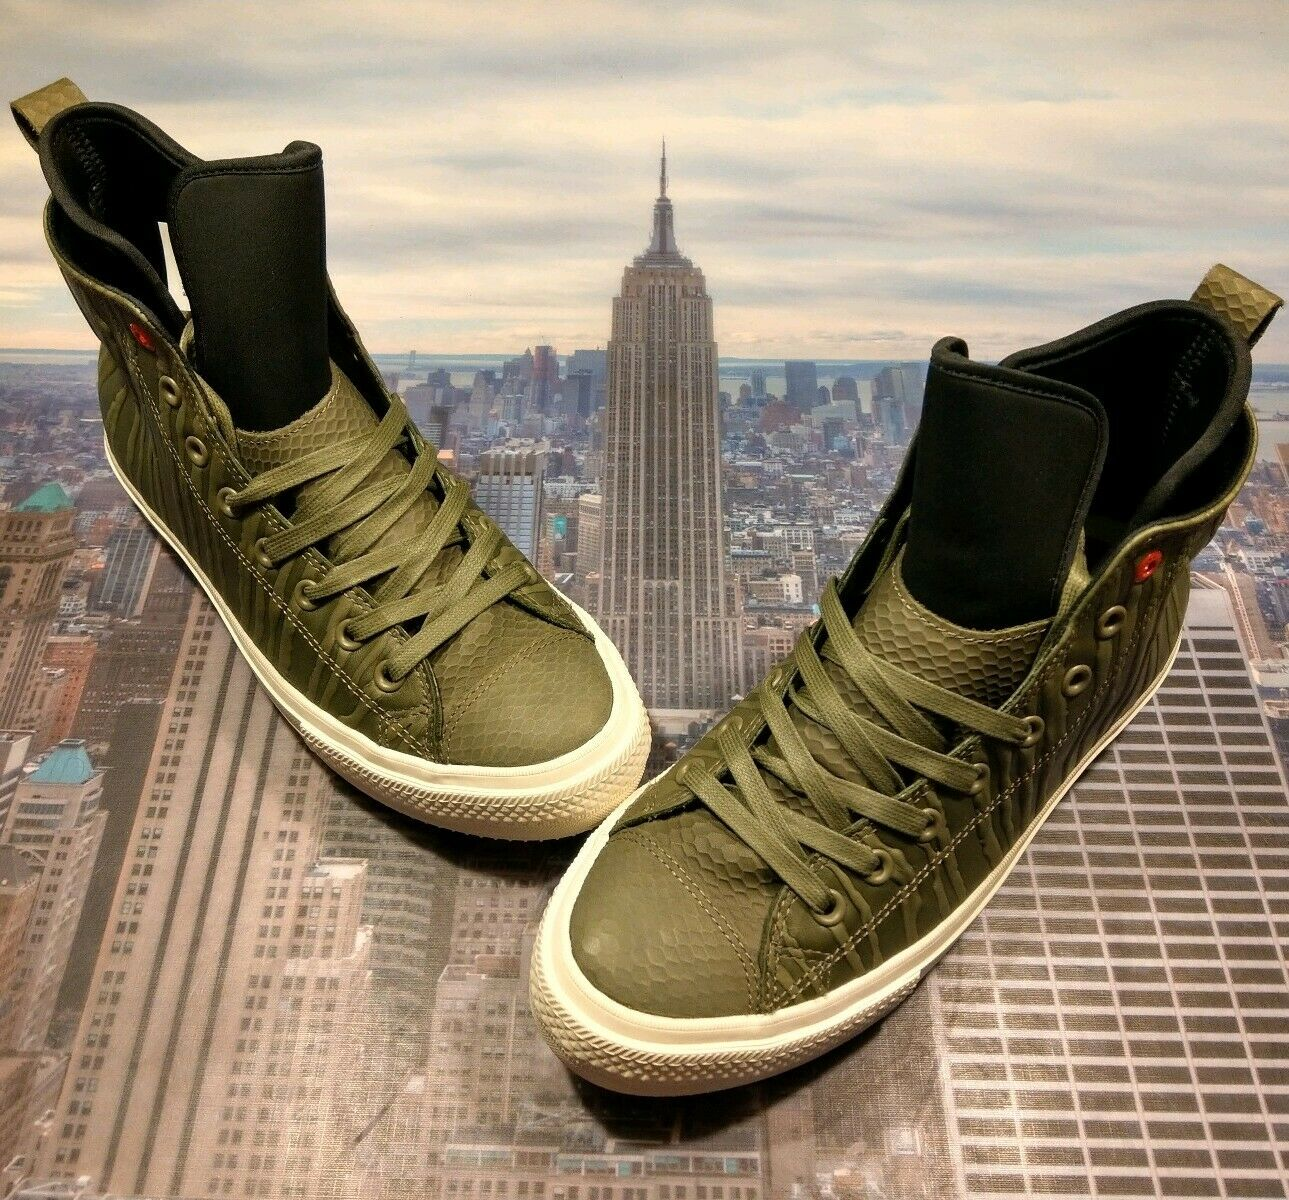 Converse Chuck Taylor All Star WP démarrage High Top Medium Olive Taille 9.5 158838 C